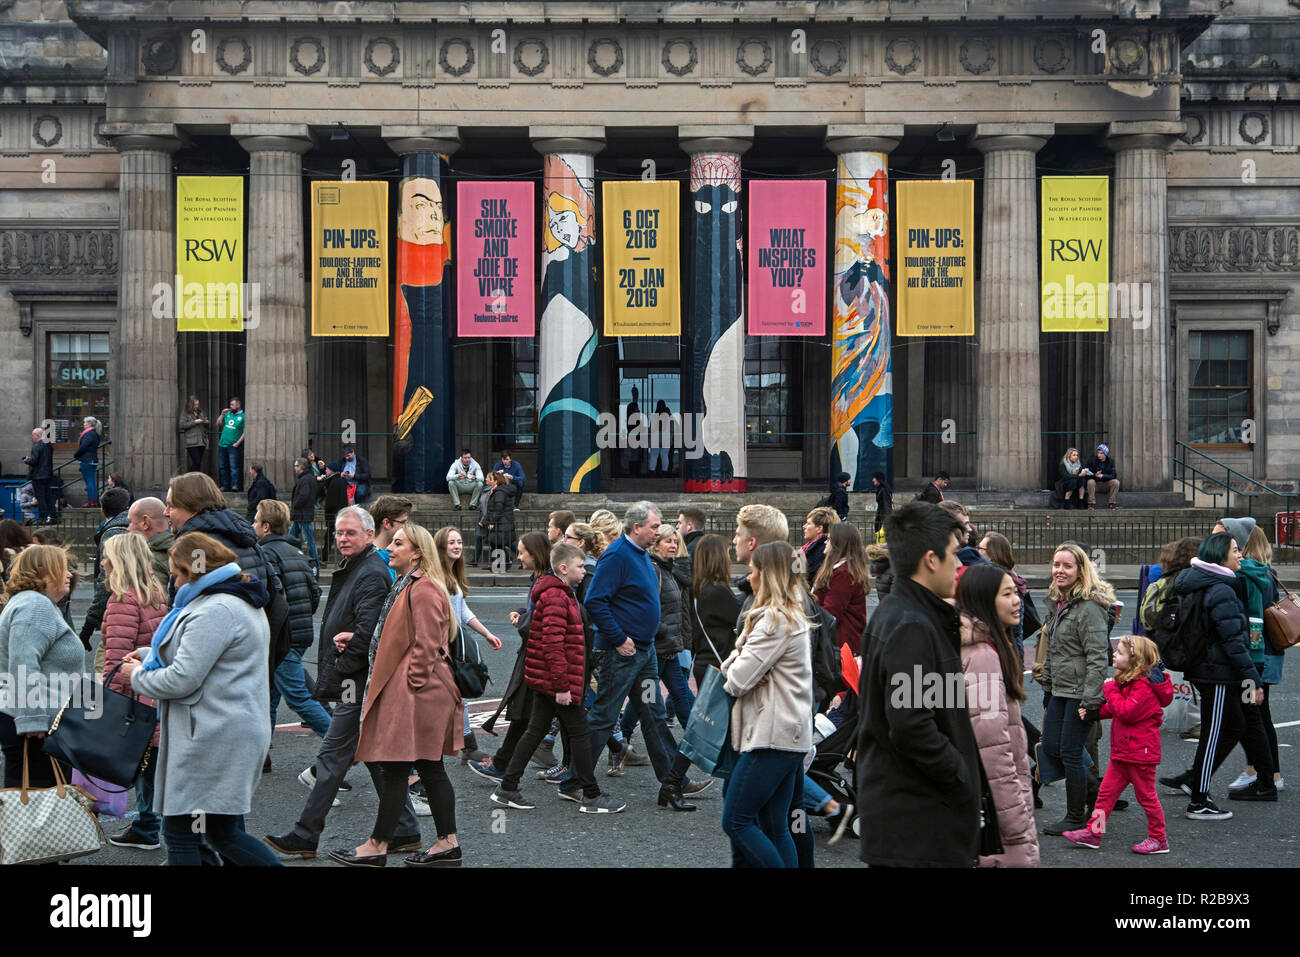 Pedestrians walking along Princes Street in front of the RSA Building advertising 'Pin-Ups   Toulouse-Lautrec and the Art of Celebrity' . - Stock Image